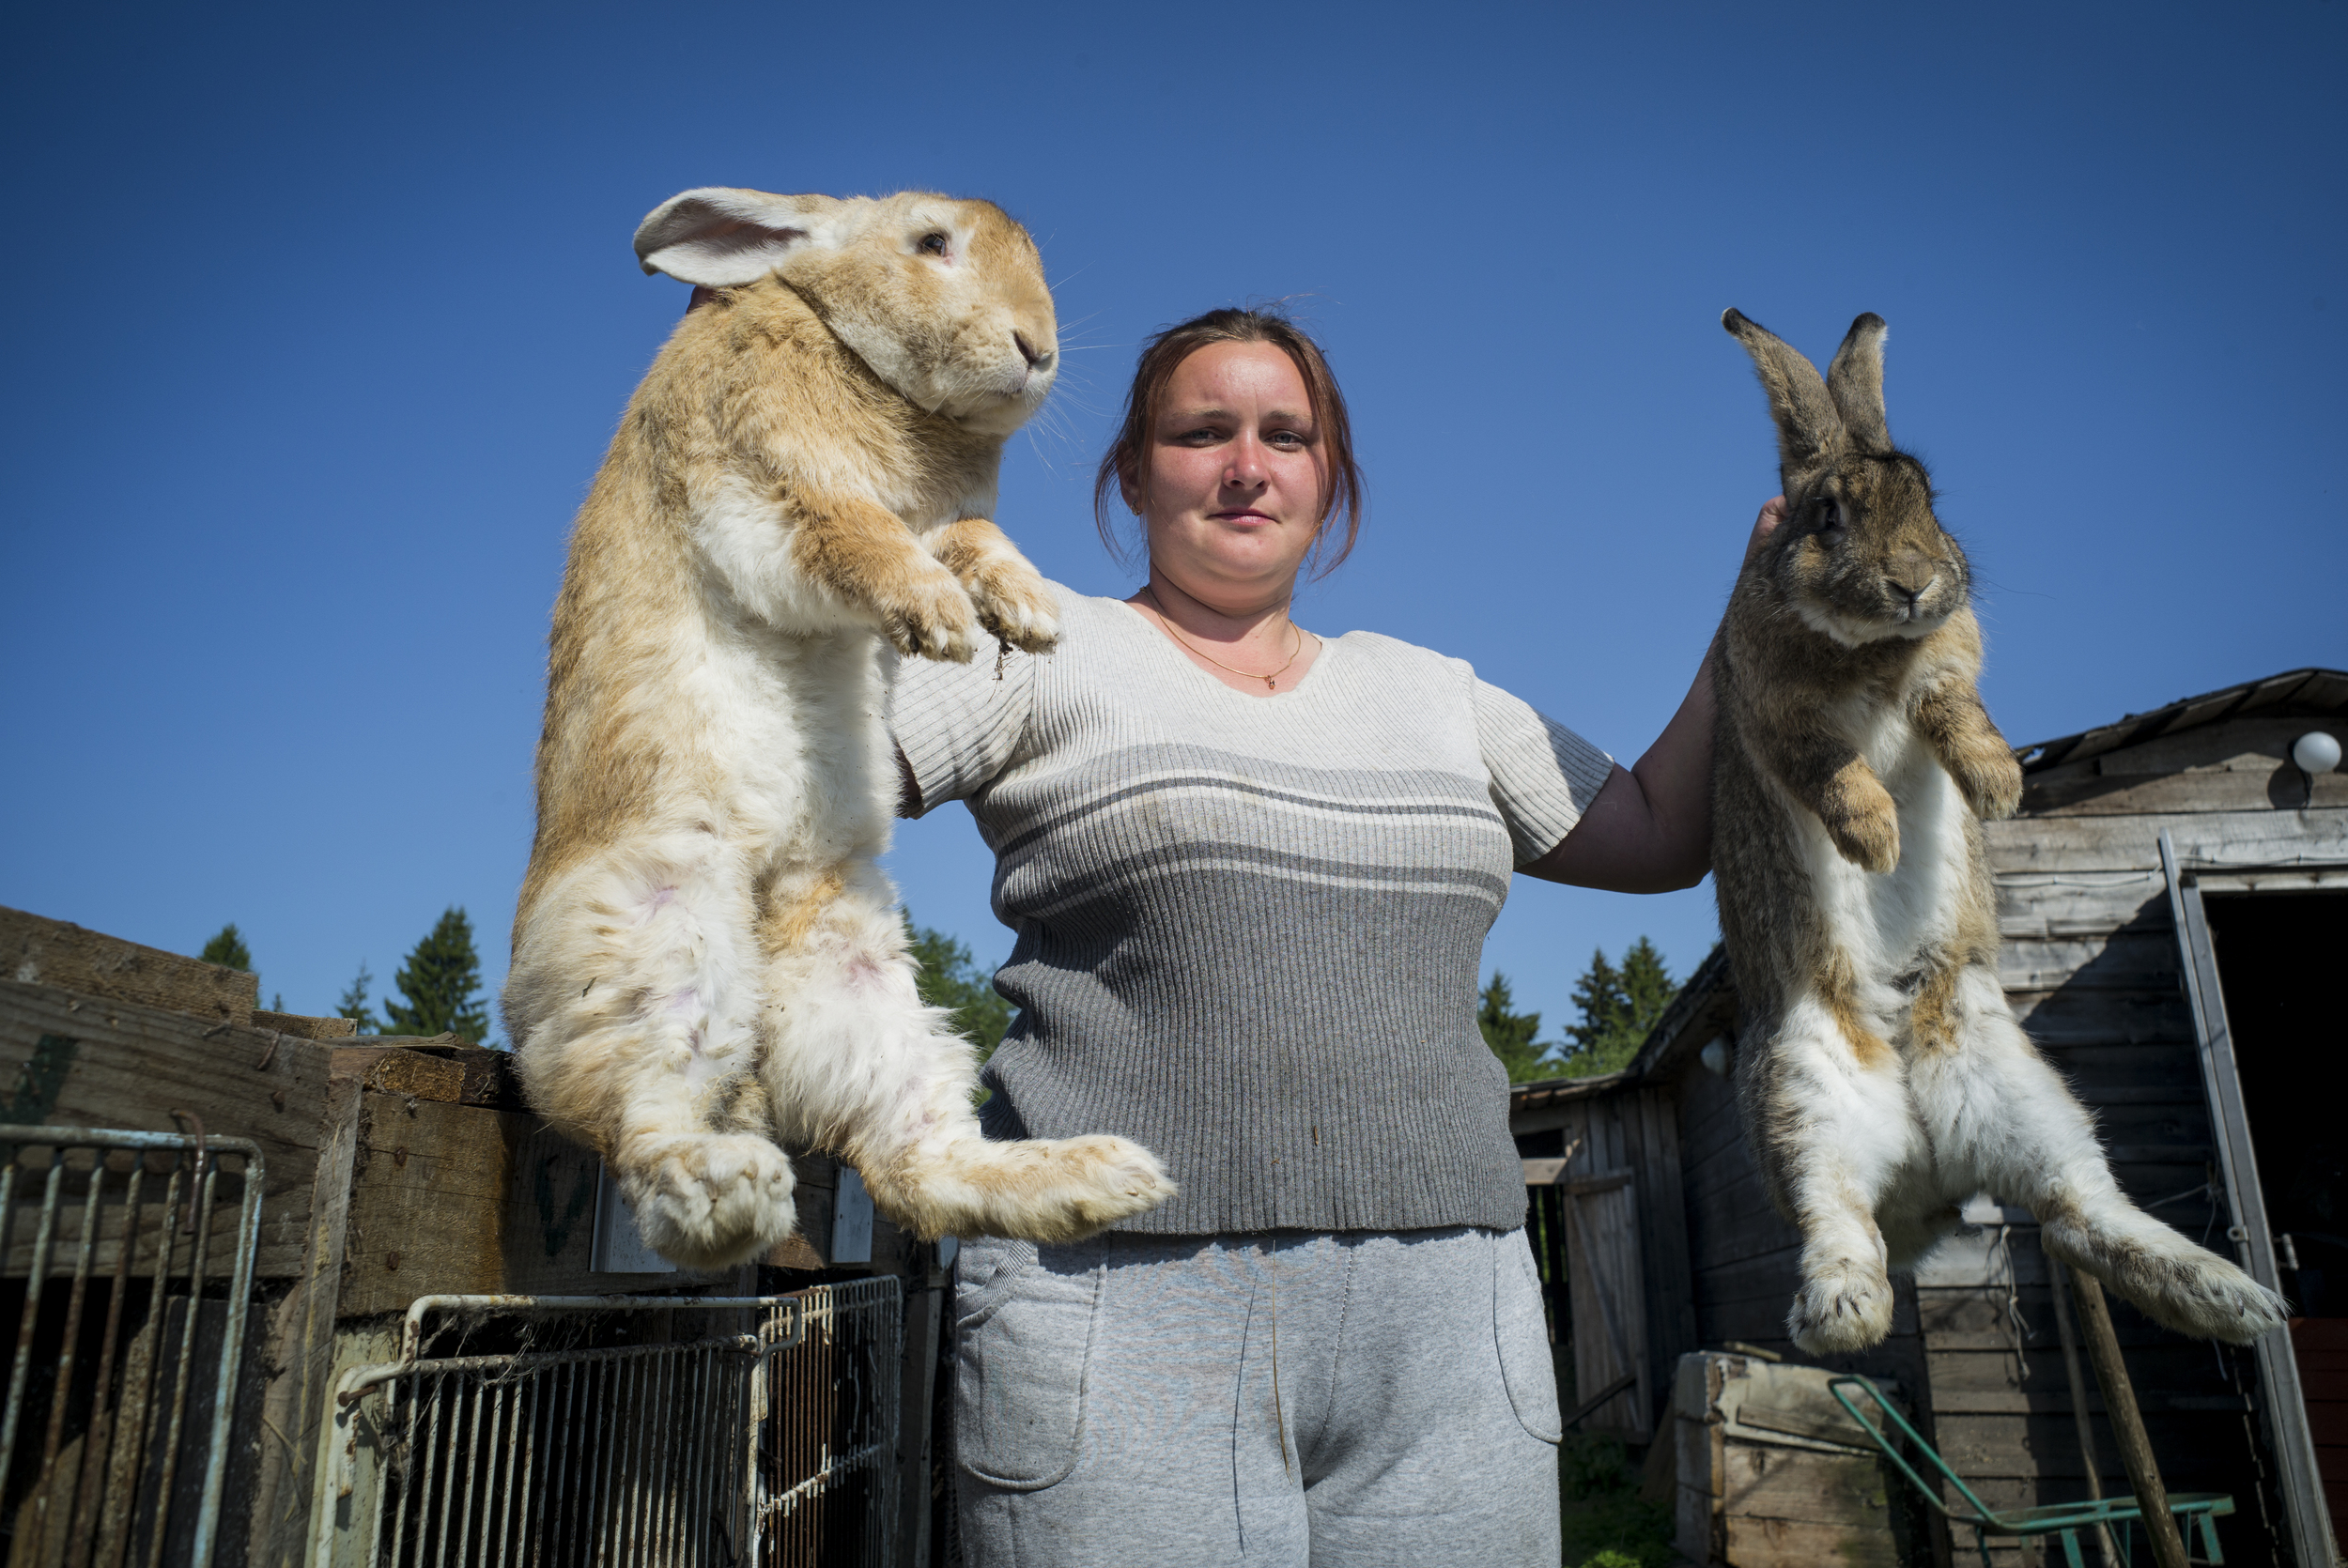 Sevetlana Taherbeigi poses for a portrait with a 30 pound rabbit in each hand on June 2, 2015, in Goritsa, Moskovskaya, Russia. The Teherbeigi family has over 600 rabbits on their farm which they breed for their meat and fur. (© Alicia Afshar)